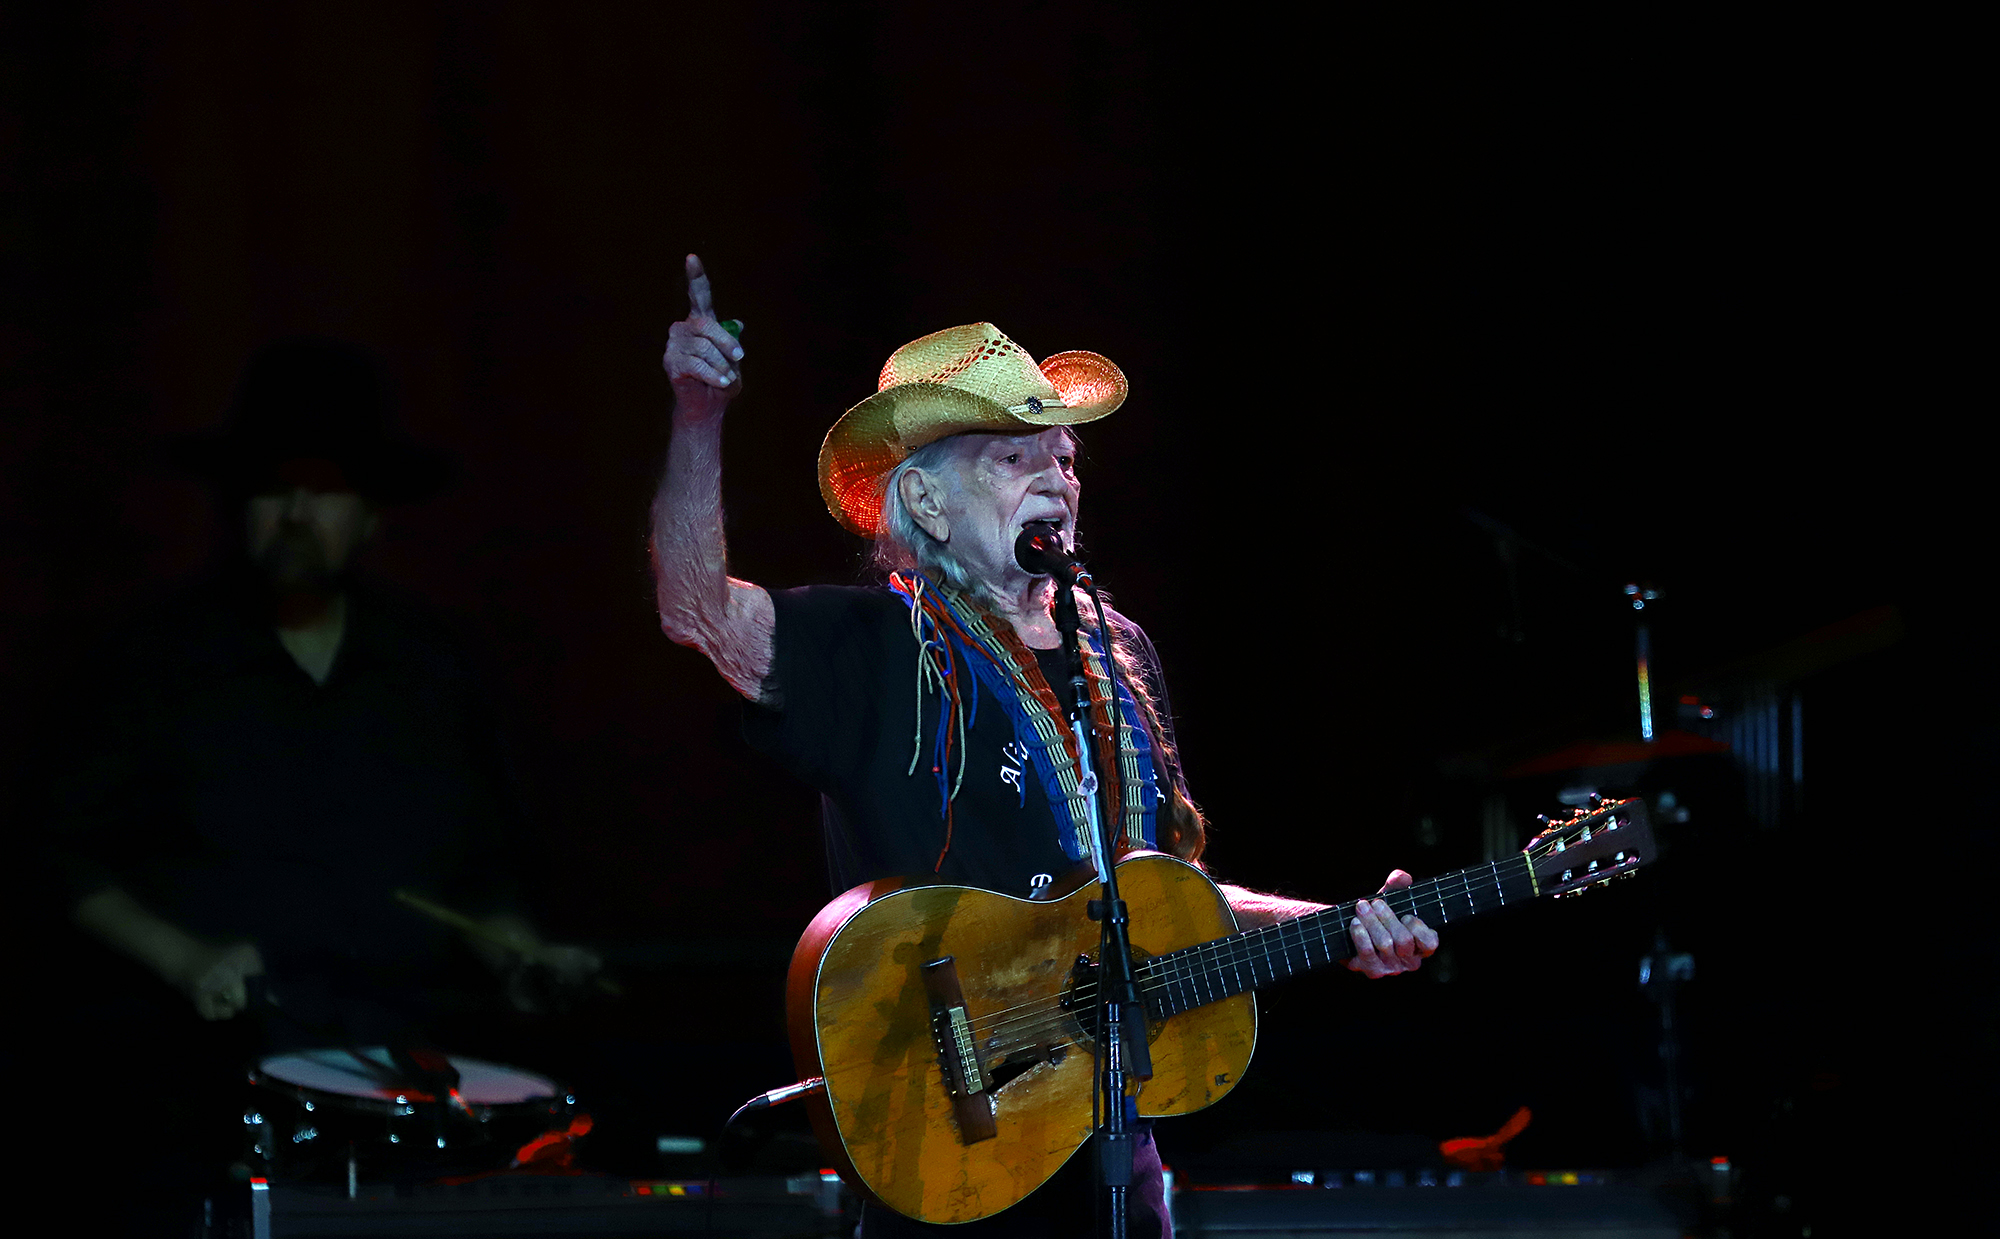 Willie Nelson returns in good health and fine form at Outlaw fest